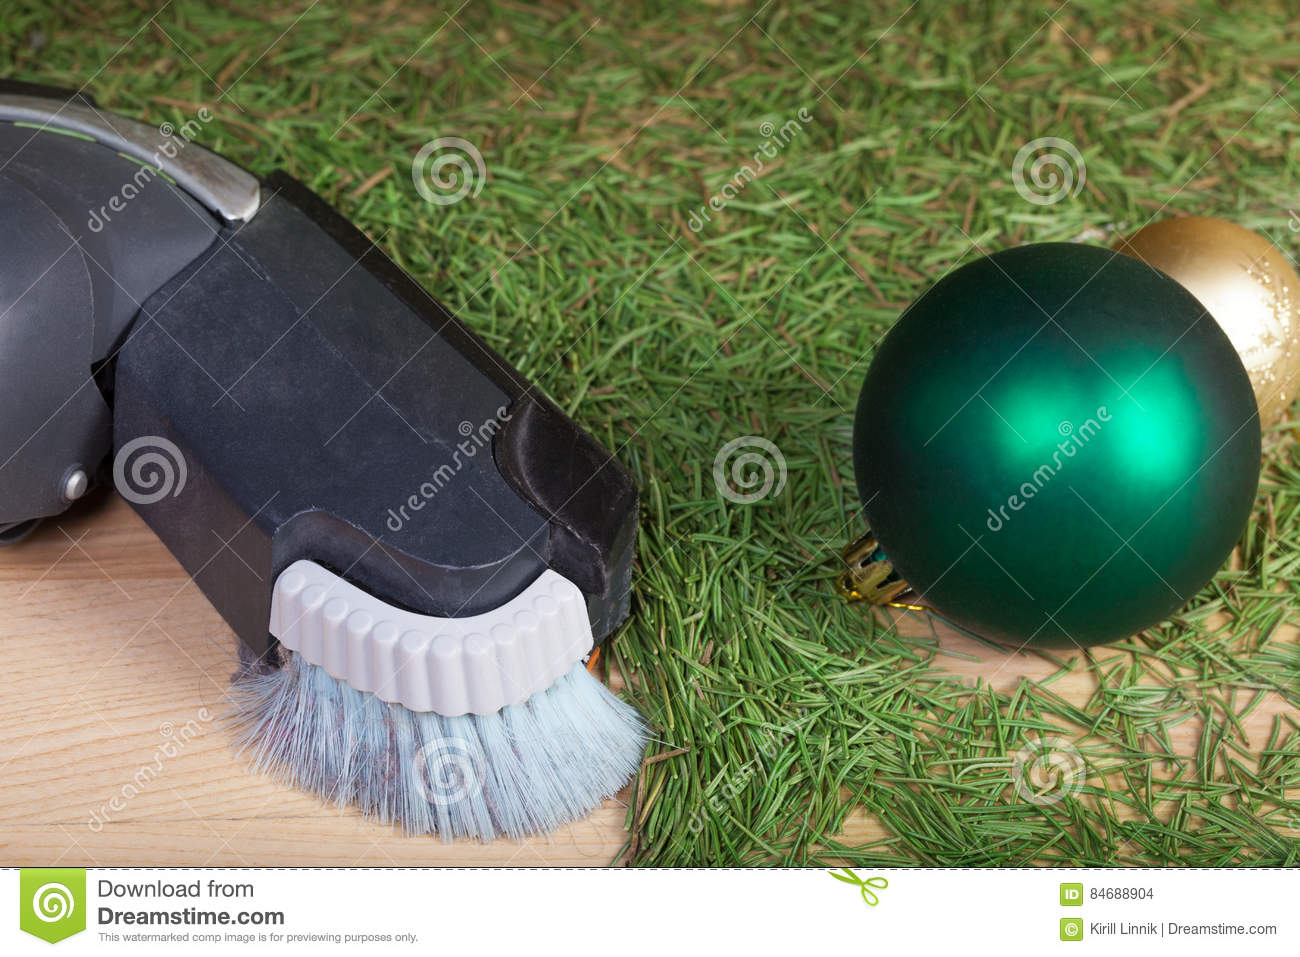 Download Cleaning After The Christmas Party Stock Photo - Image of background, pine: 84688904